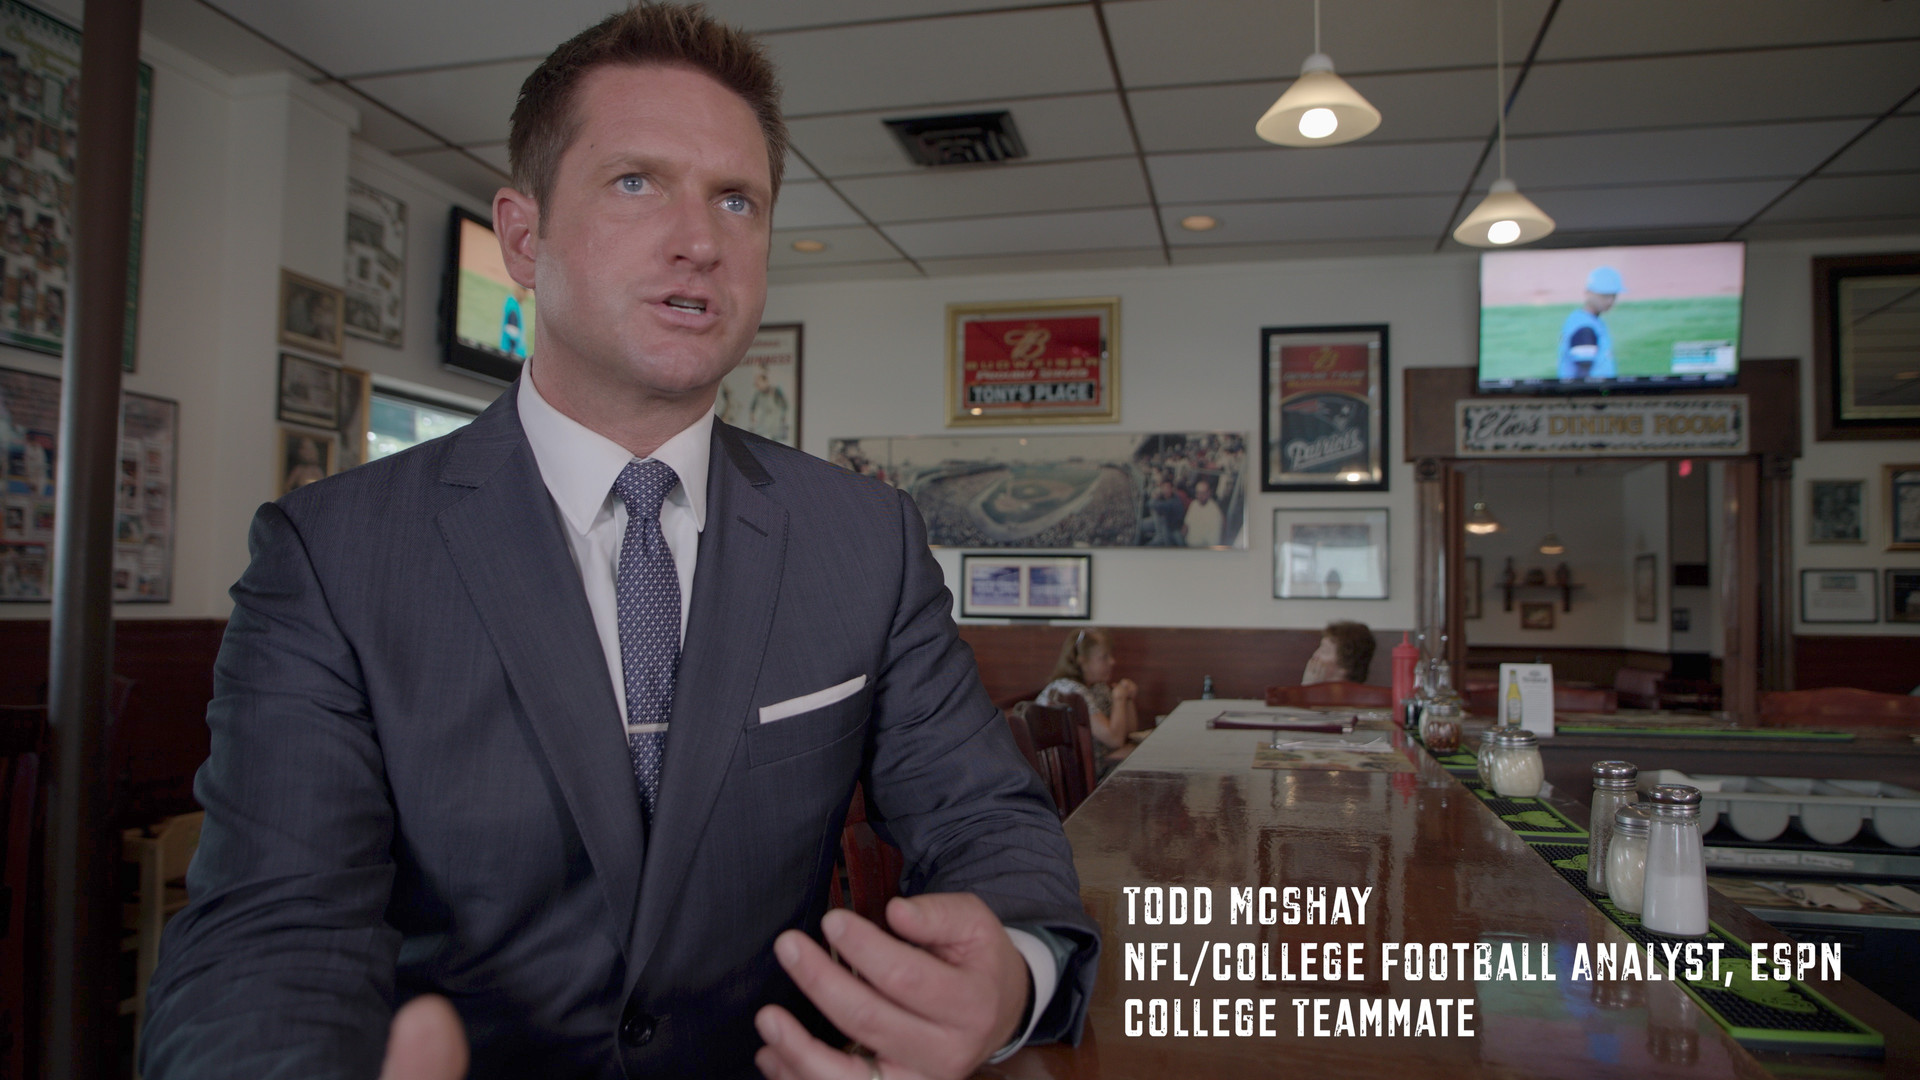 """Todd McShay is not only ESPN's NFL Draft specialist, but he was also my teammate at University of Richmond. A diligent worker with a deep love for the game of football.  His work ethic and drive to go ALL IN has helped him rise to the top of the most prominent sports network in the world. Listen in as Todd explains the football mindset going through the most challenging times. The """"I GOT THIS"""" mentality became the three most important words when things became challenging. That didn't mean things were easy. It was our way of keeping a positive mindset and staying on course. Thank you Todd for being a great friend and being a part of the Just A Kid From Fall River film project. Shoutout to director Randy West of Monarch Productions for his relentless work on this project."""